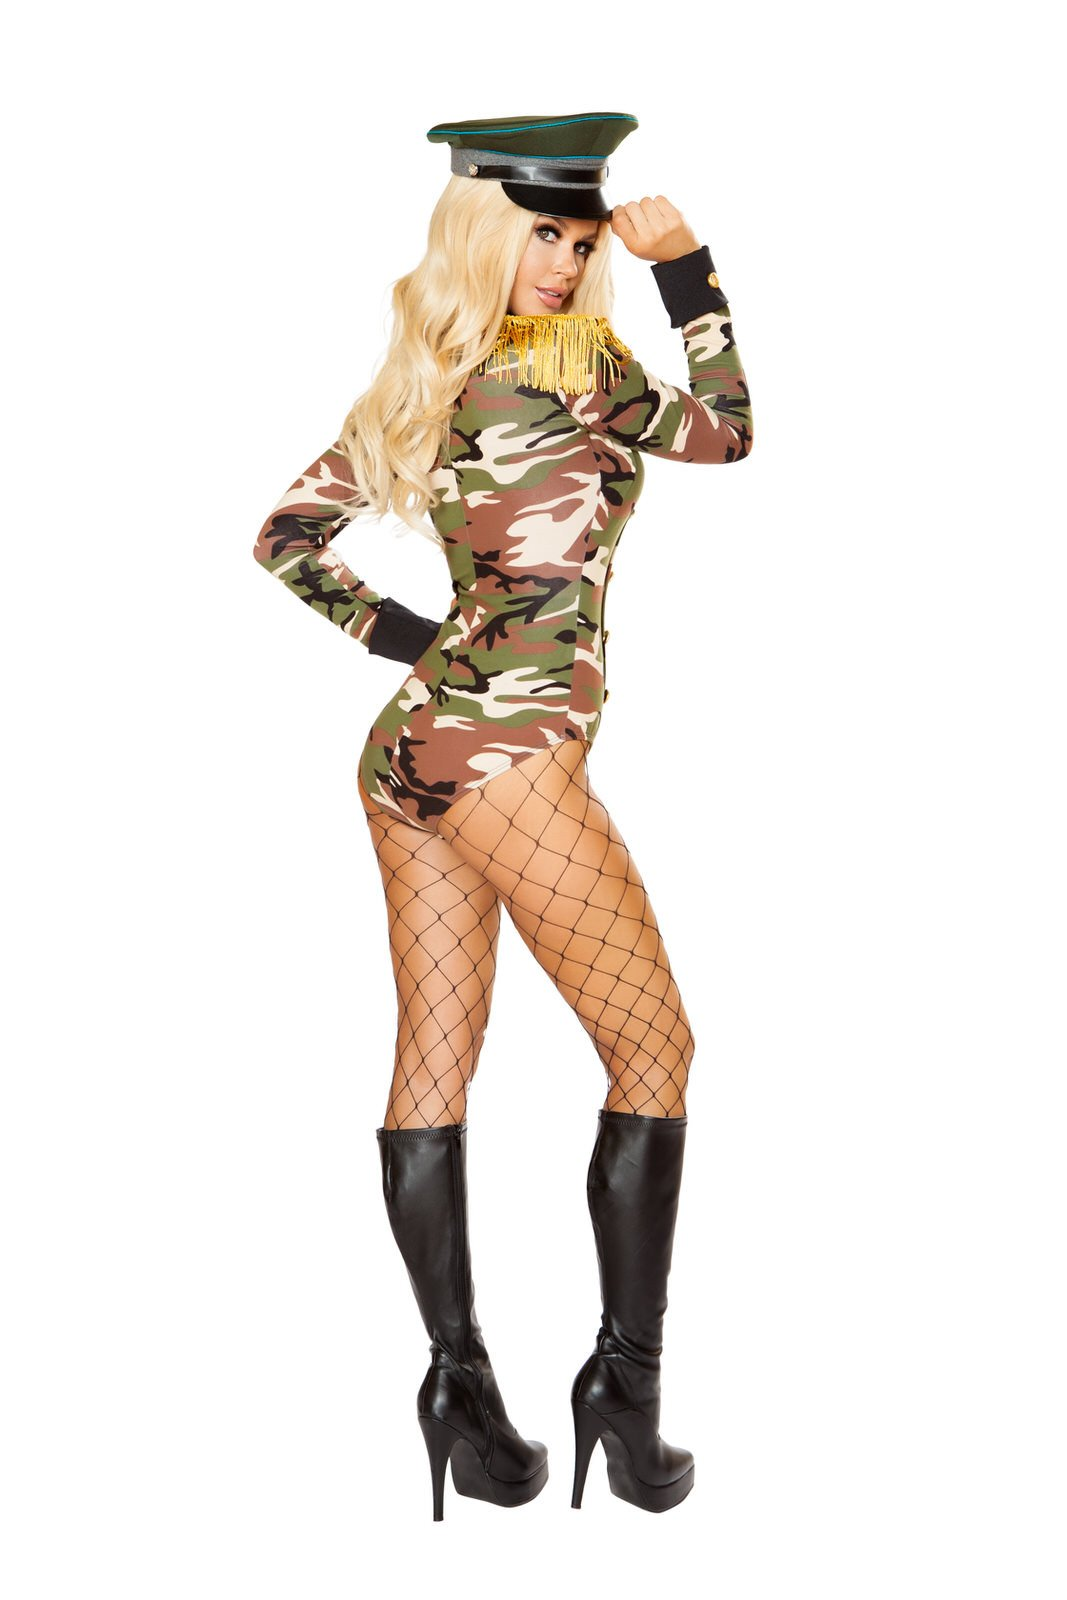 4817 - 1pc Army Girl